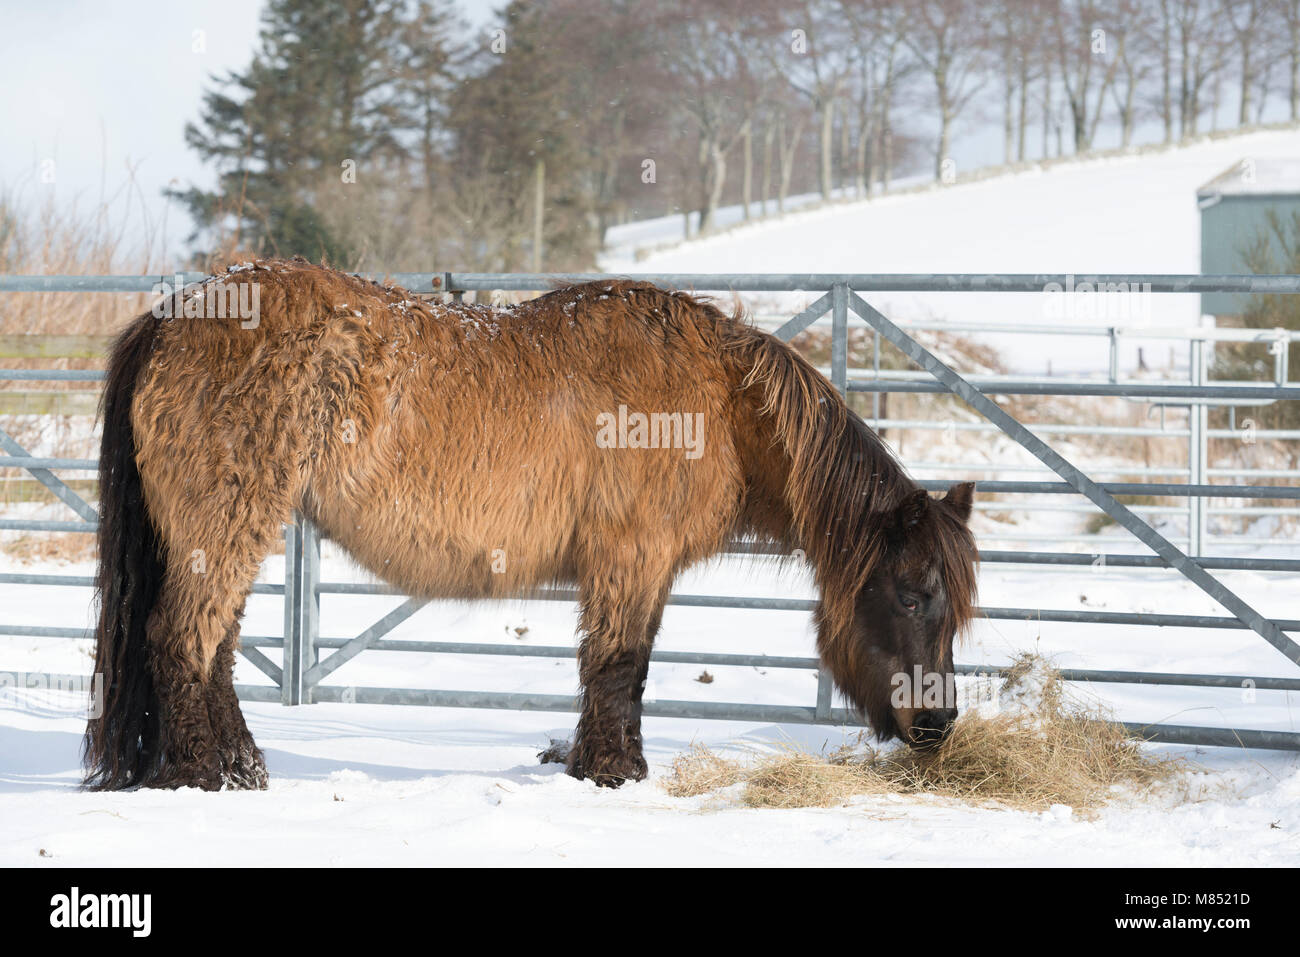 A Pony with Cushing's Disease Eating Hay on a Winter Morning - Stock Image